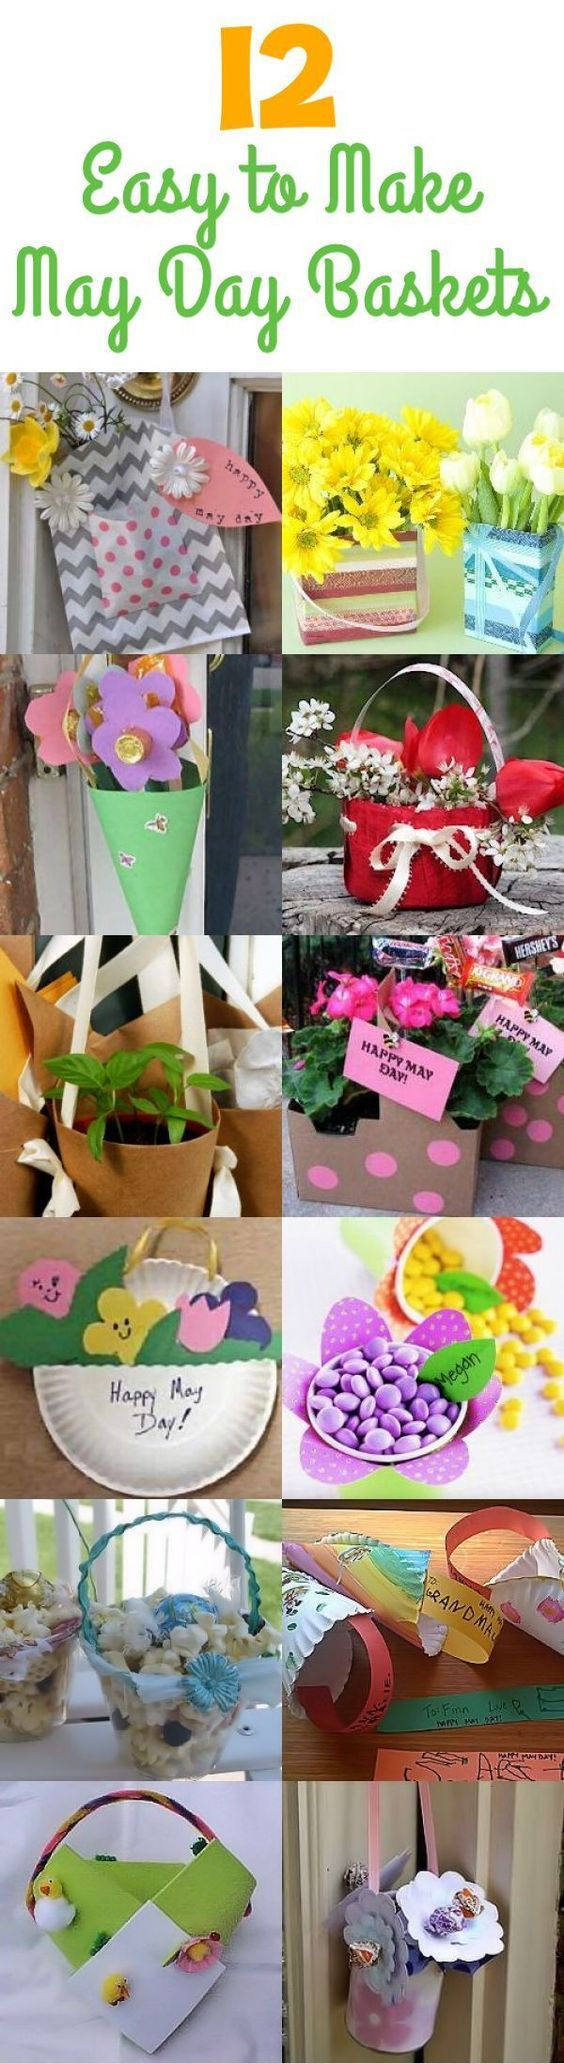 12 DIY May Day Baskets - Create some fun and unique May Day baskets to surprise your neighbors with! (http://aboutfamilycrafts.com/12-may-day-baskets-you-can-make/):